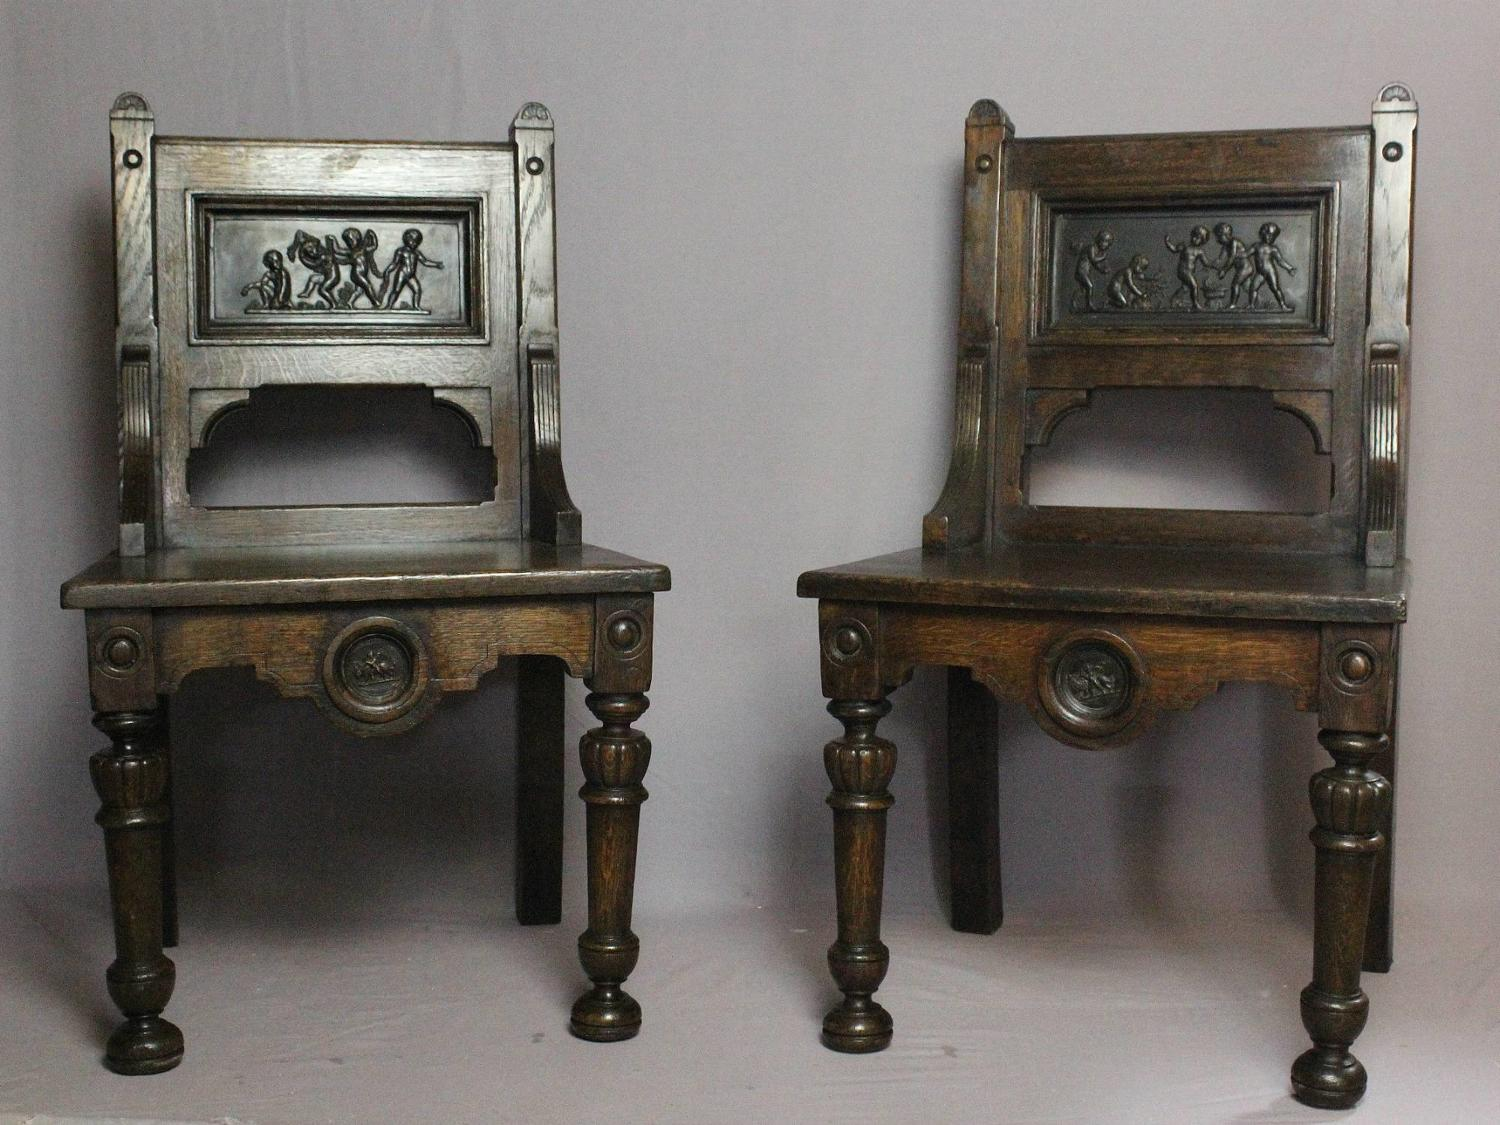 Pair of Oak Hall Chairs inlaid with terracotta plaques